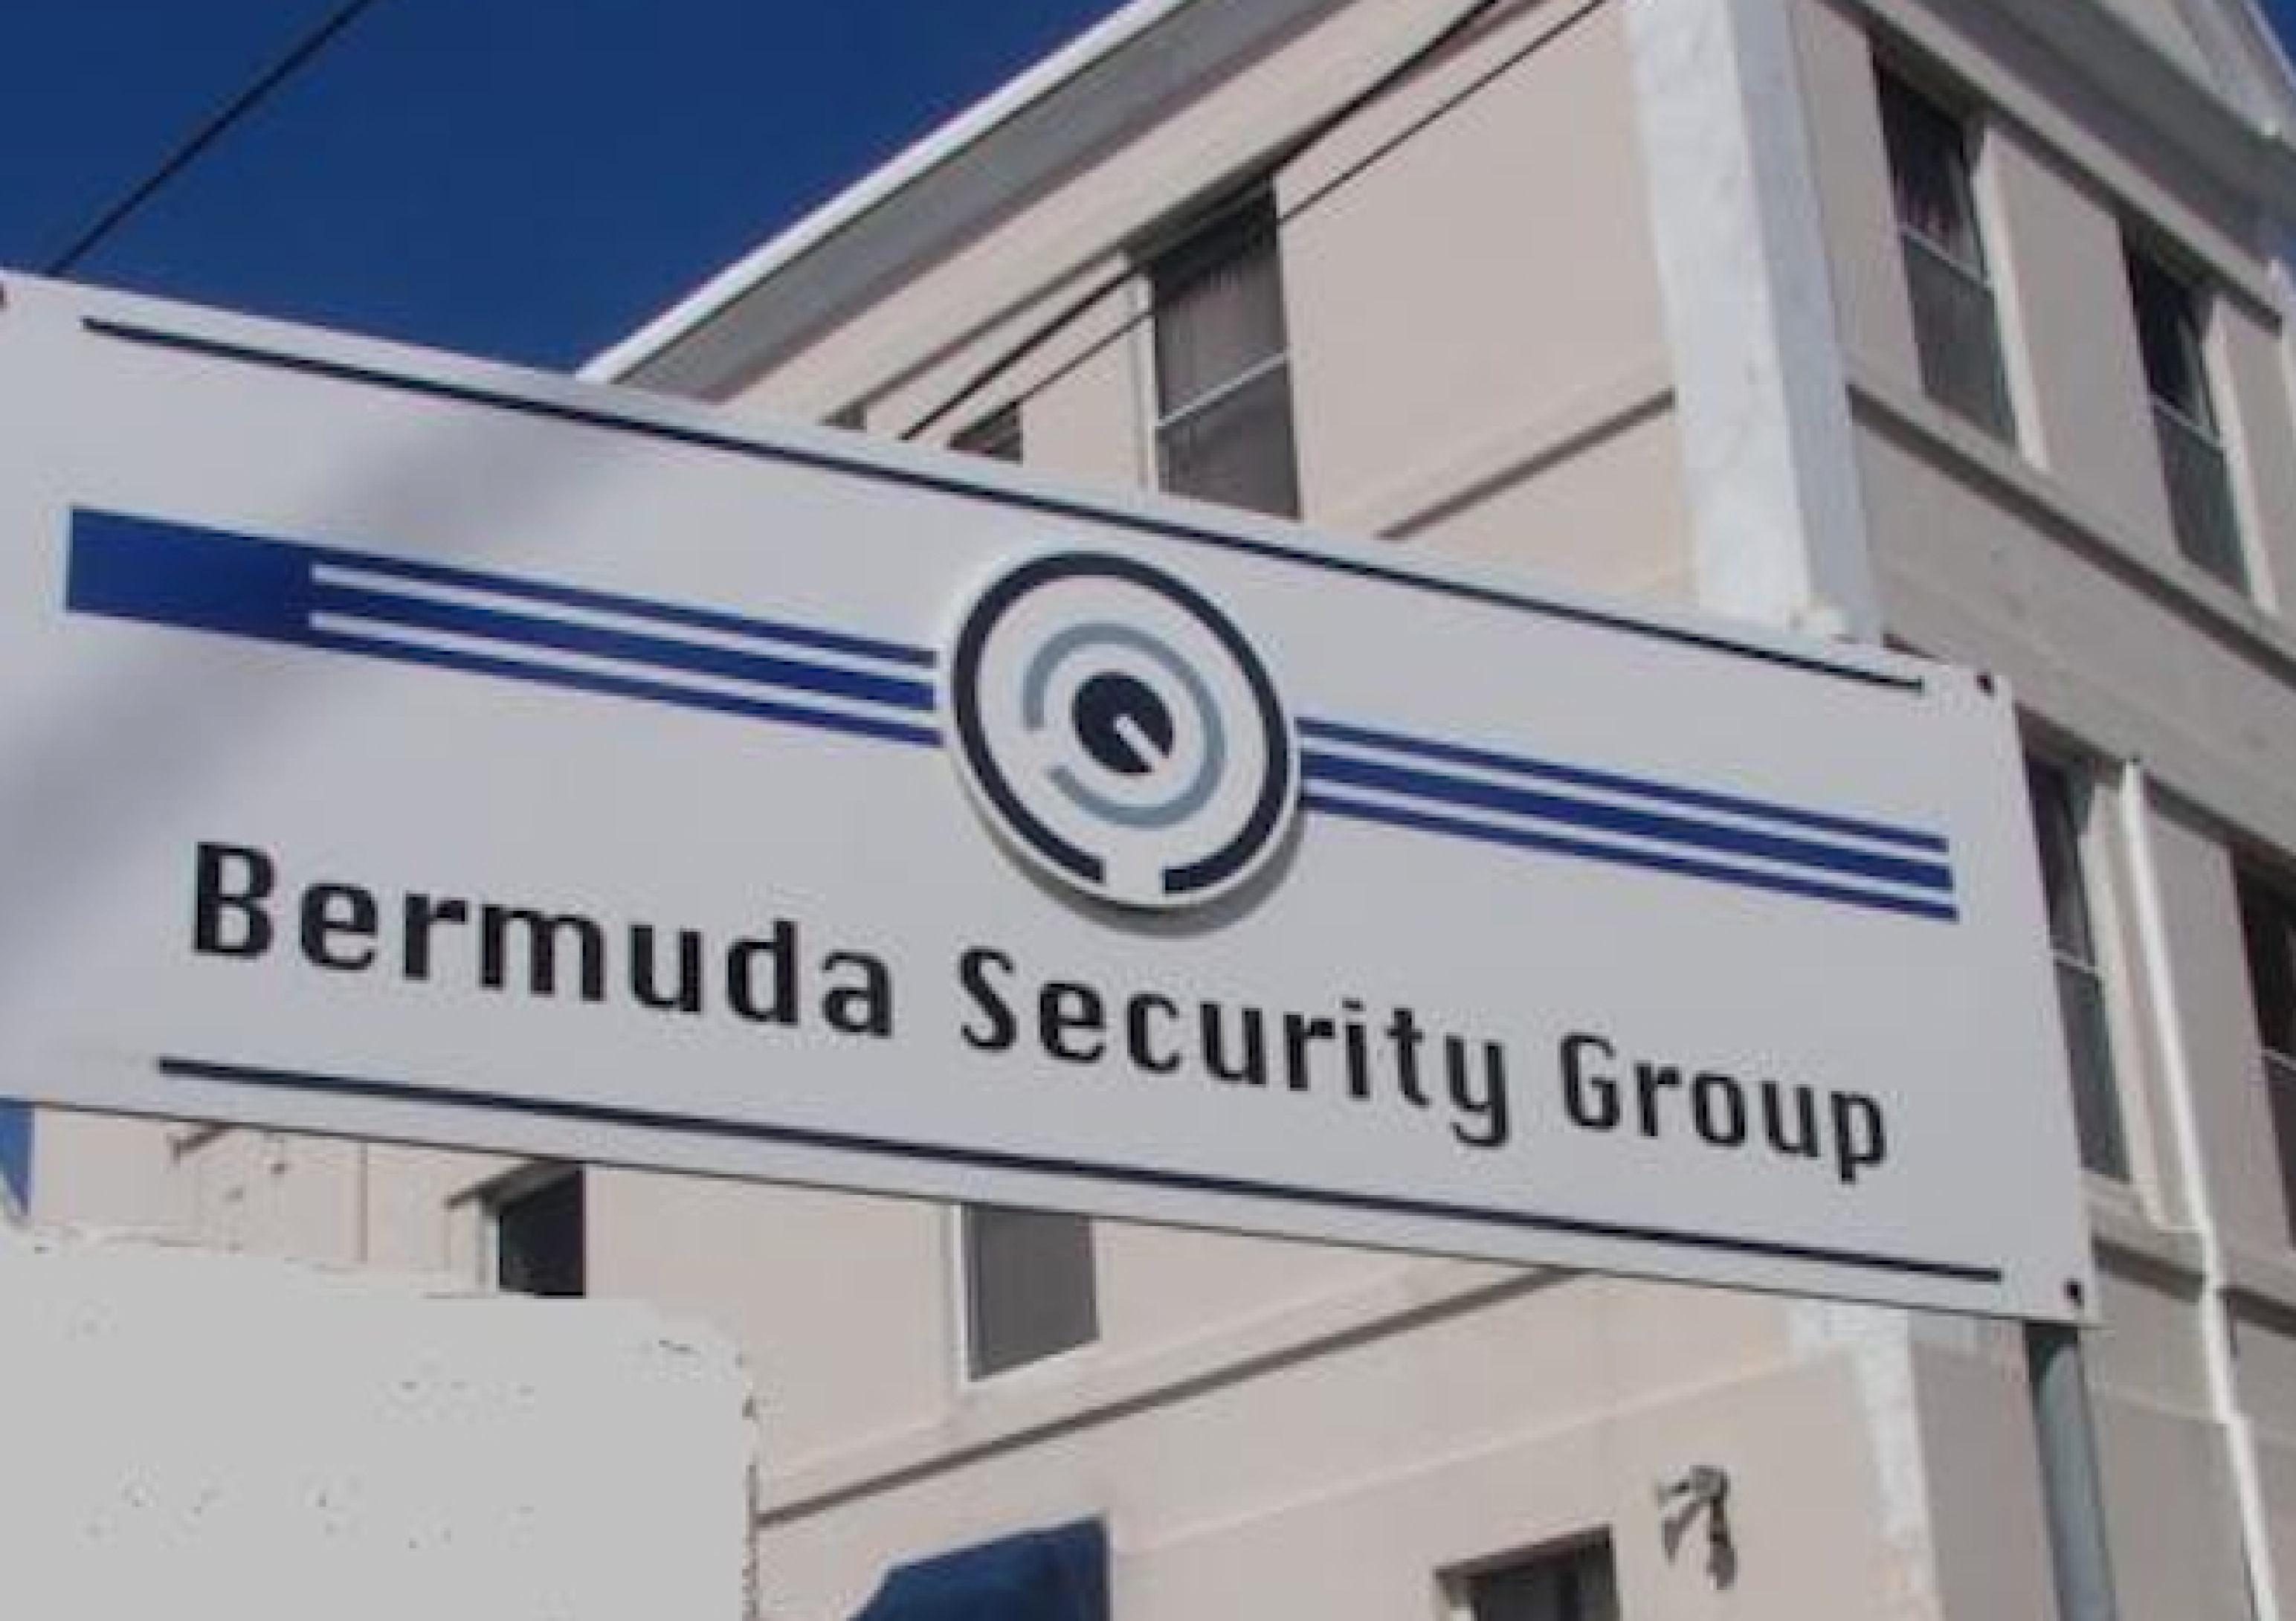 Bermuda Security Group Ltd.